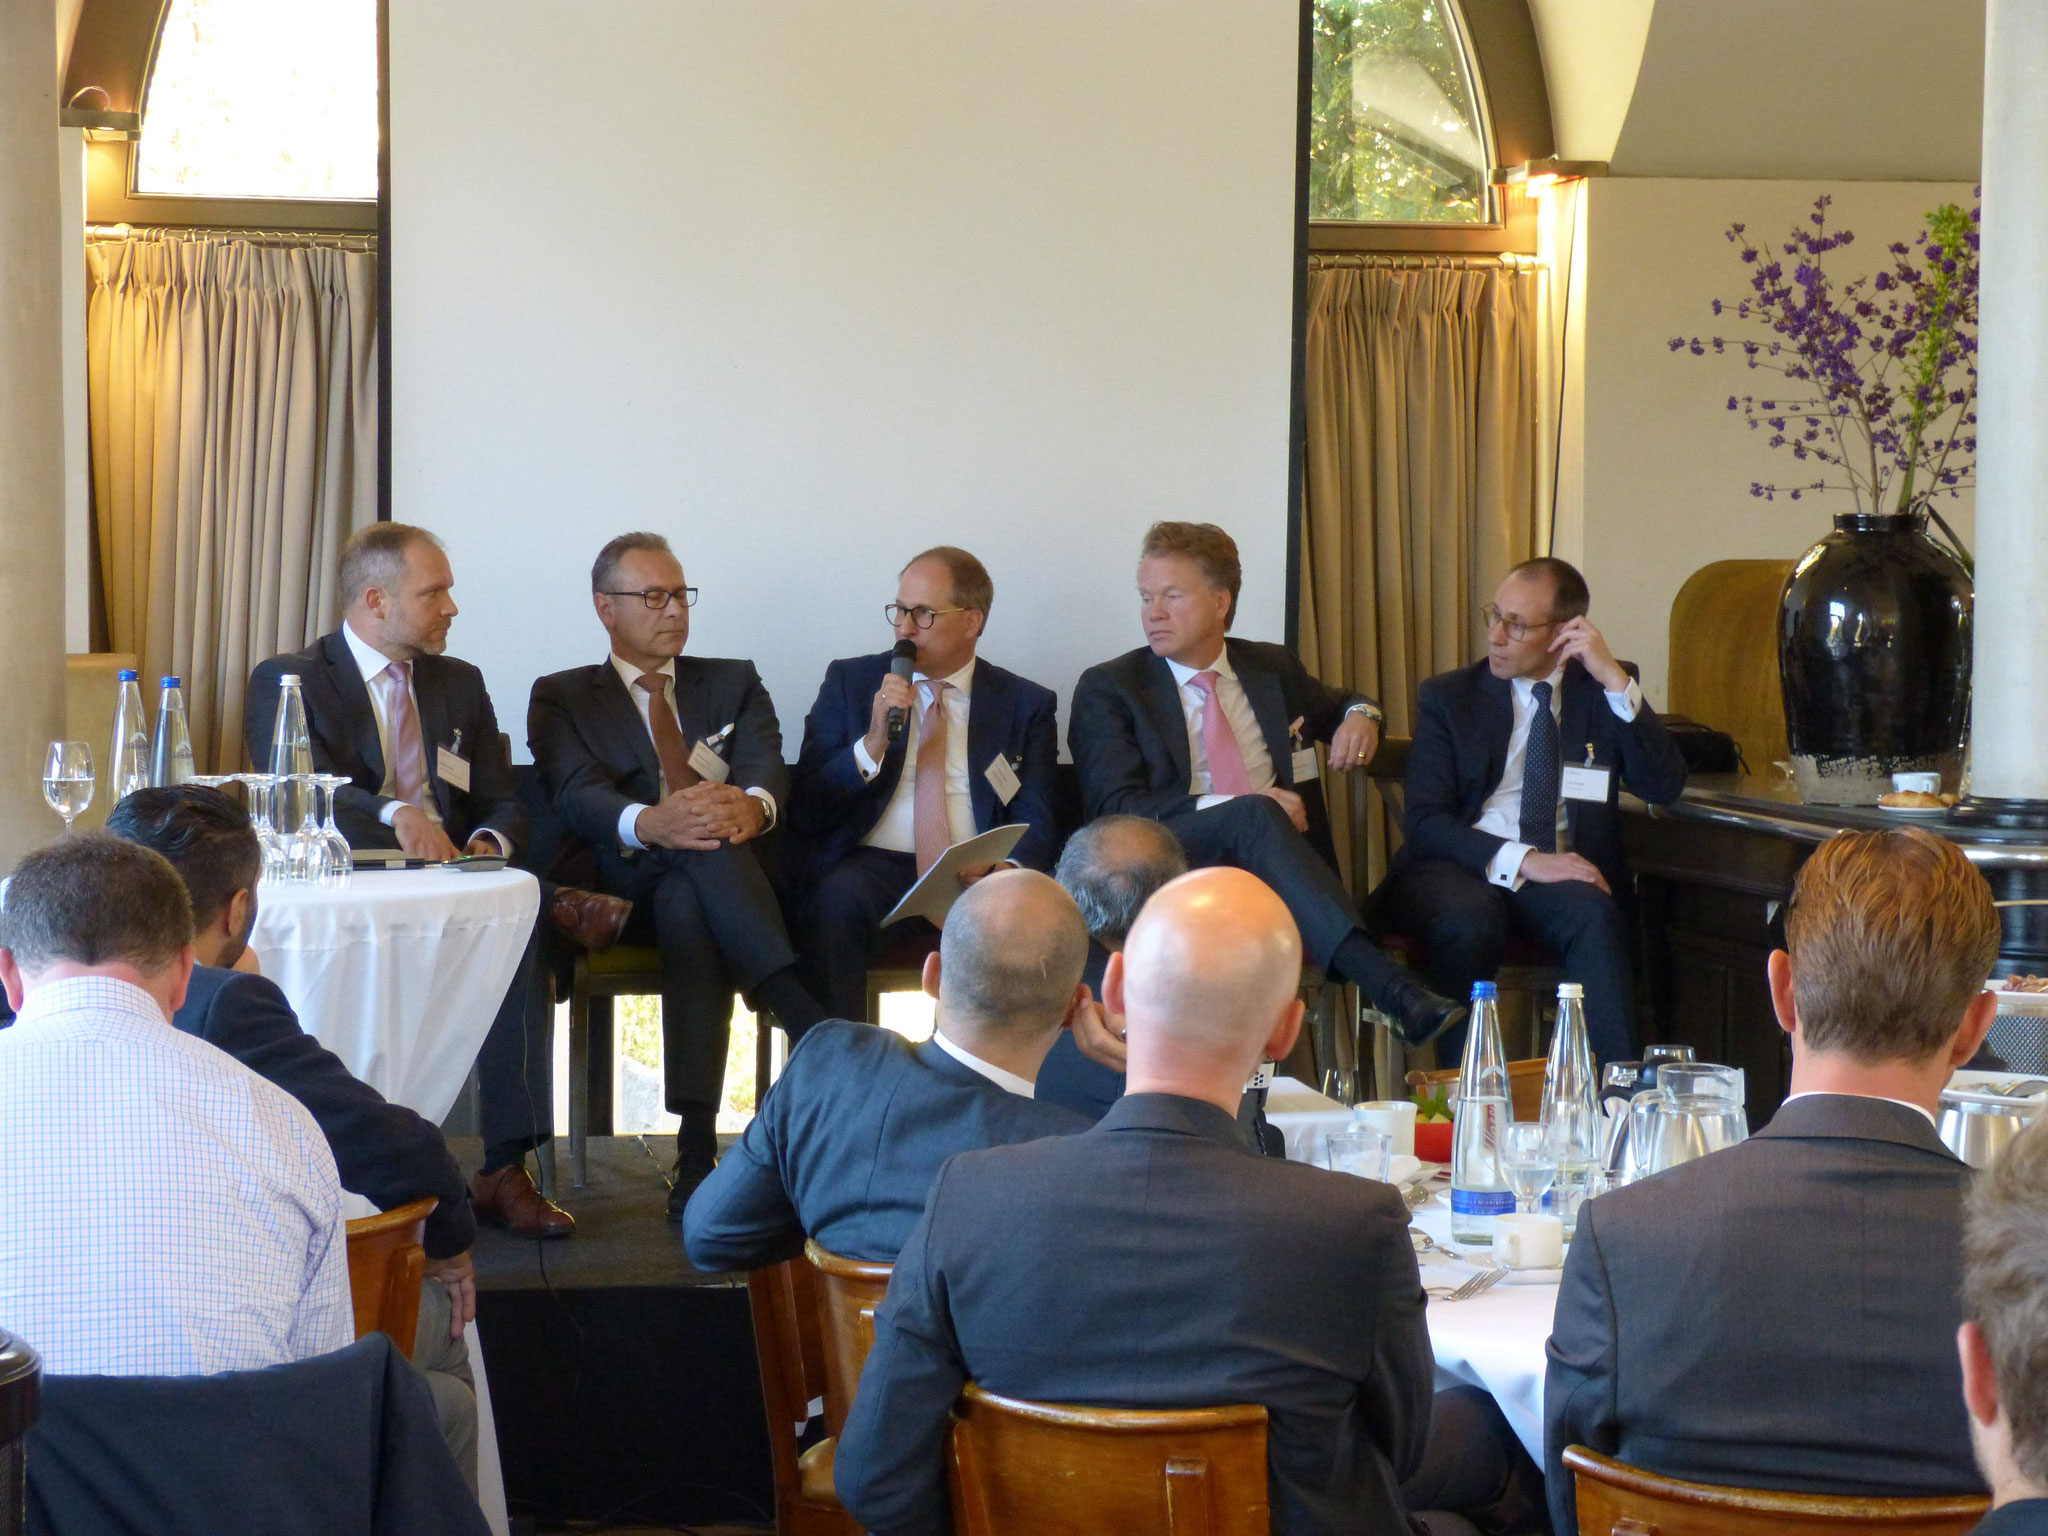 Dr. Kloyer moderiert die Podiumsdiskussion (vlnr): Stefan Lehotkay (Clearsight Investments AG), Heinrich Strauß (Insofinance Industrial Real Estate Holding GmbH), Dr. Andreas Kloyer (Vorstands, BRSI e.V), Carl-Jan von der Goltz (Maturus Finance GmbH)